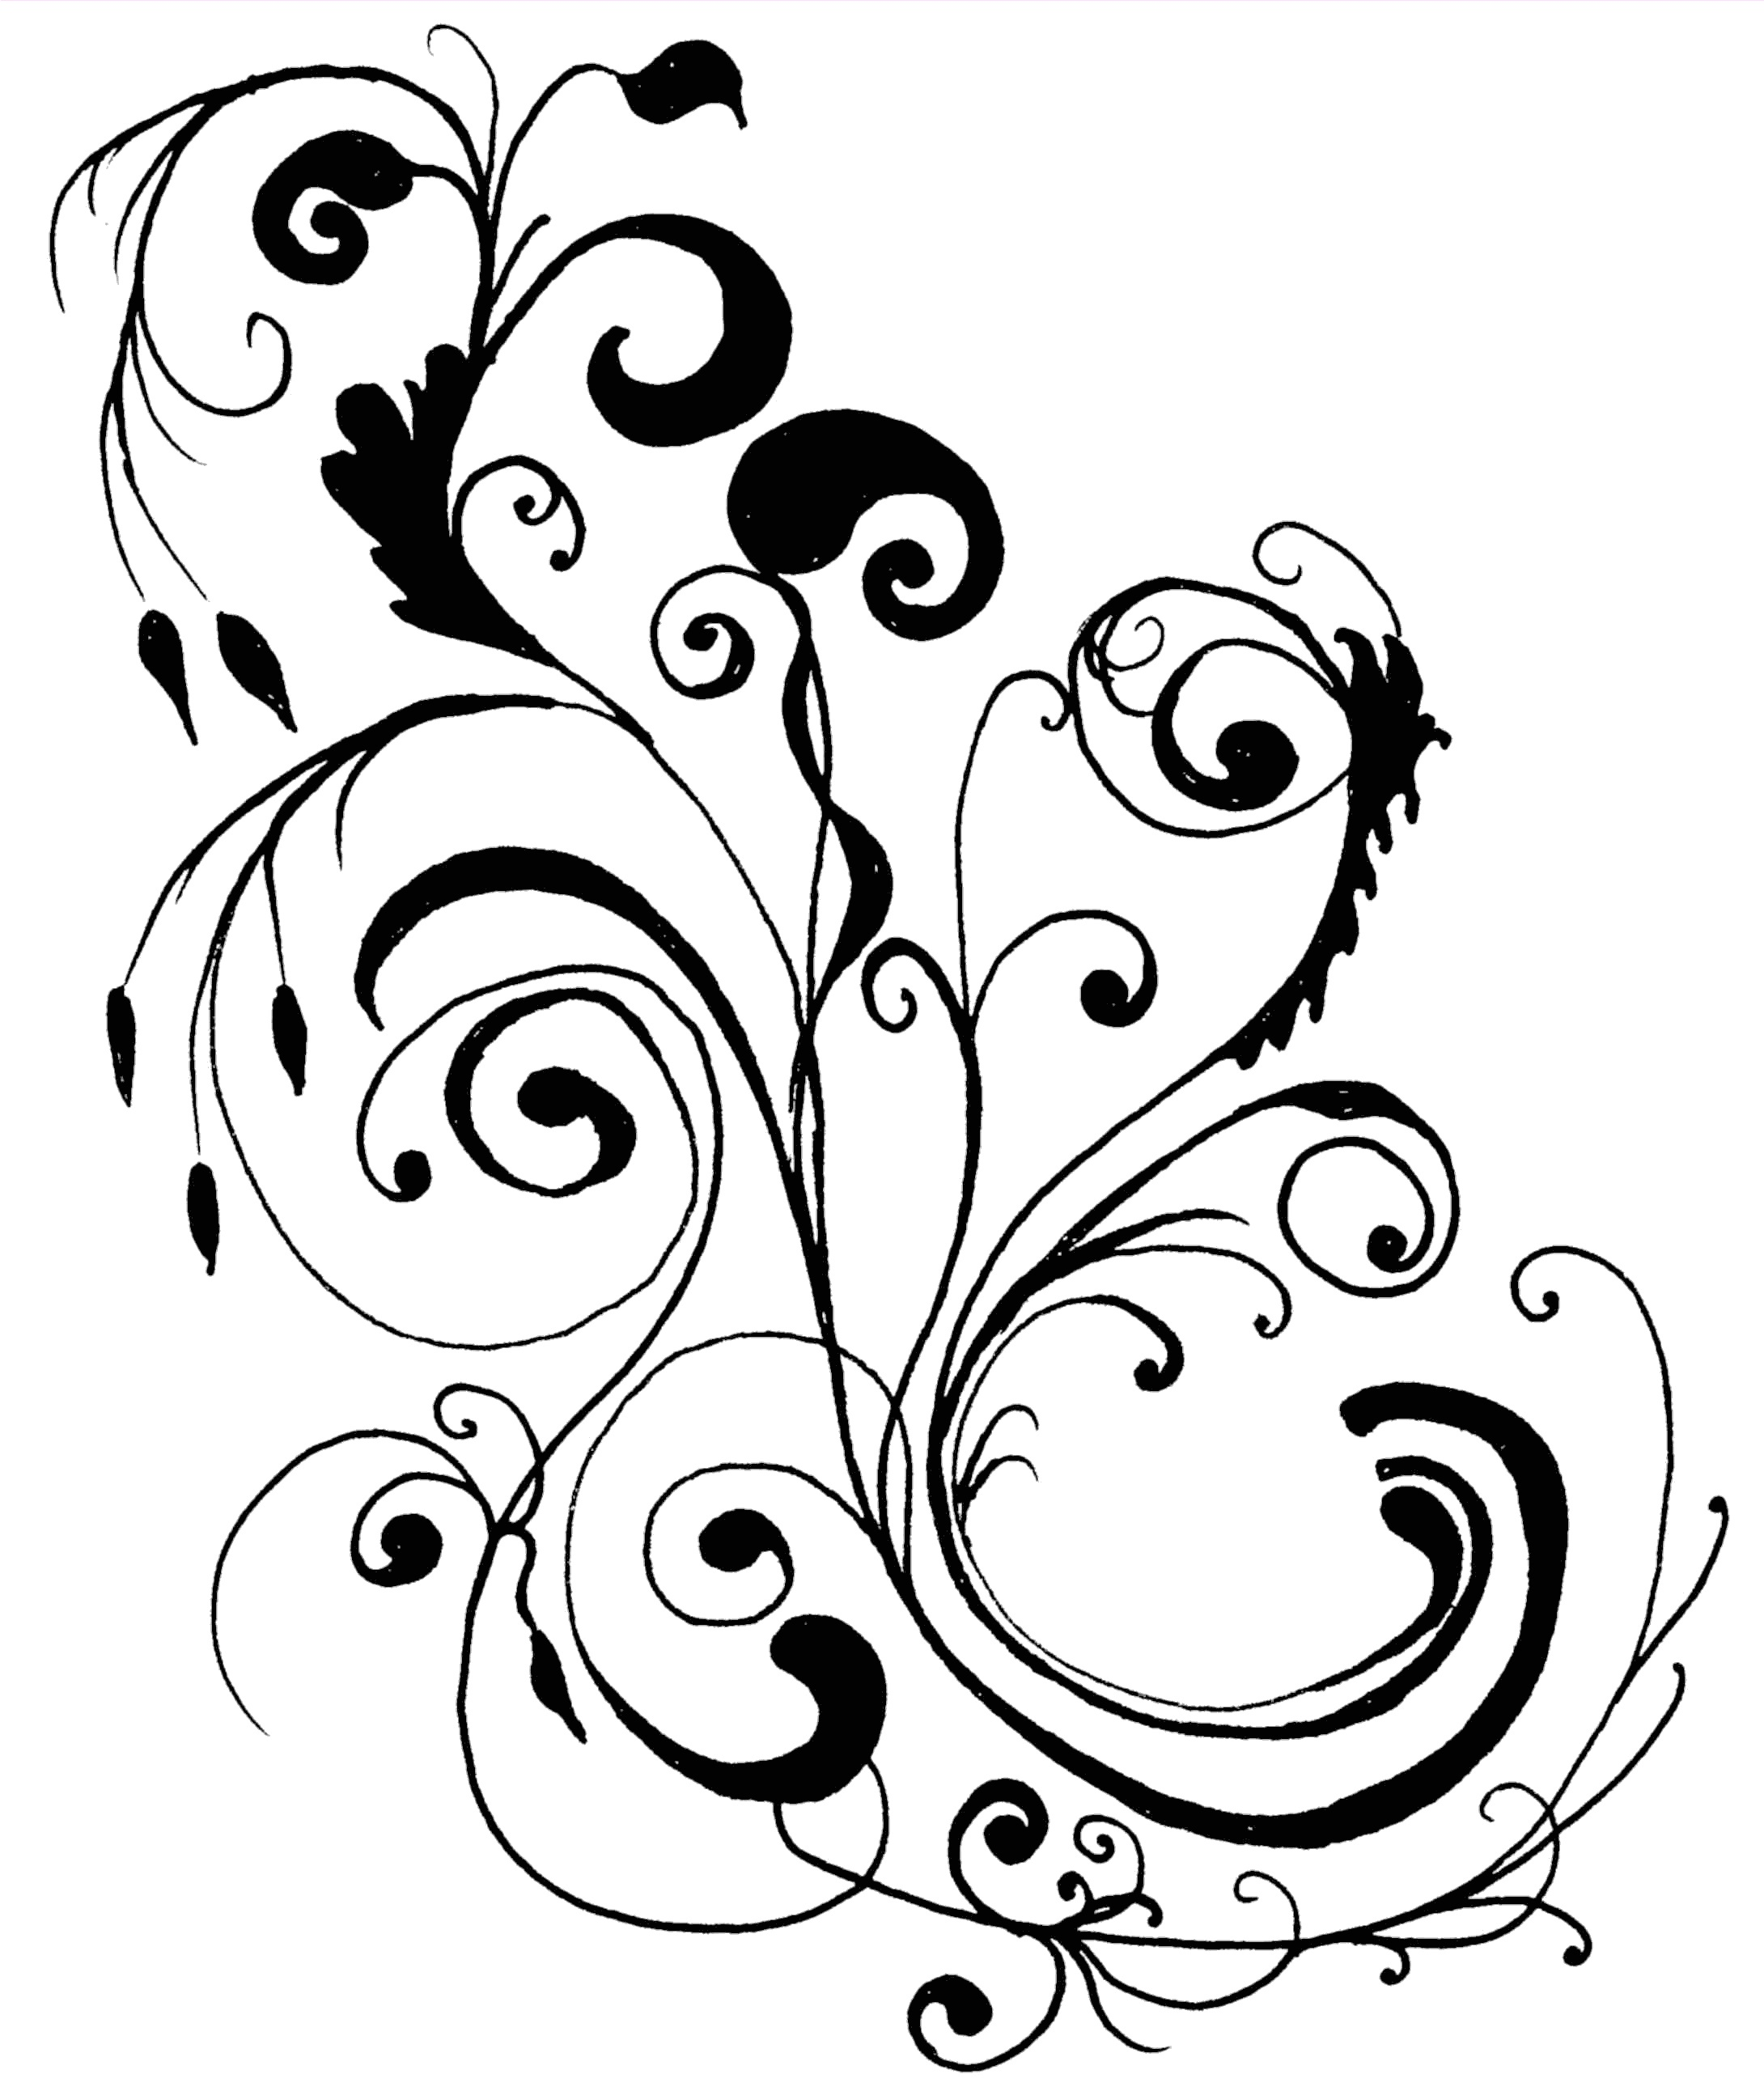 Line Art Border Designs : Line art designs clipart best